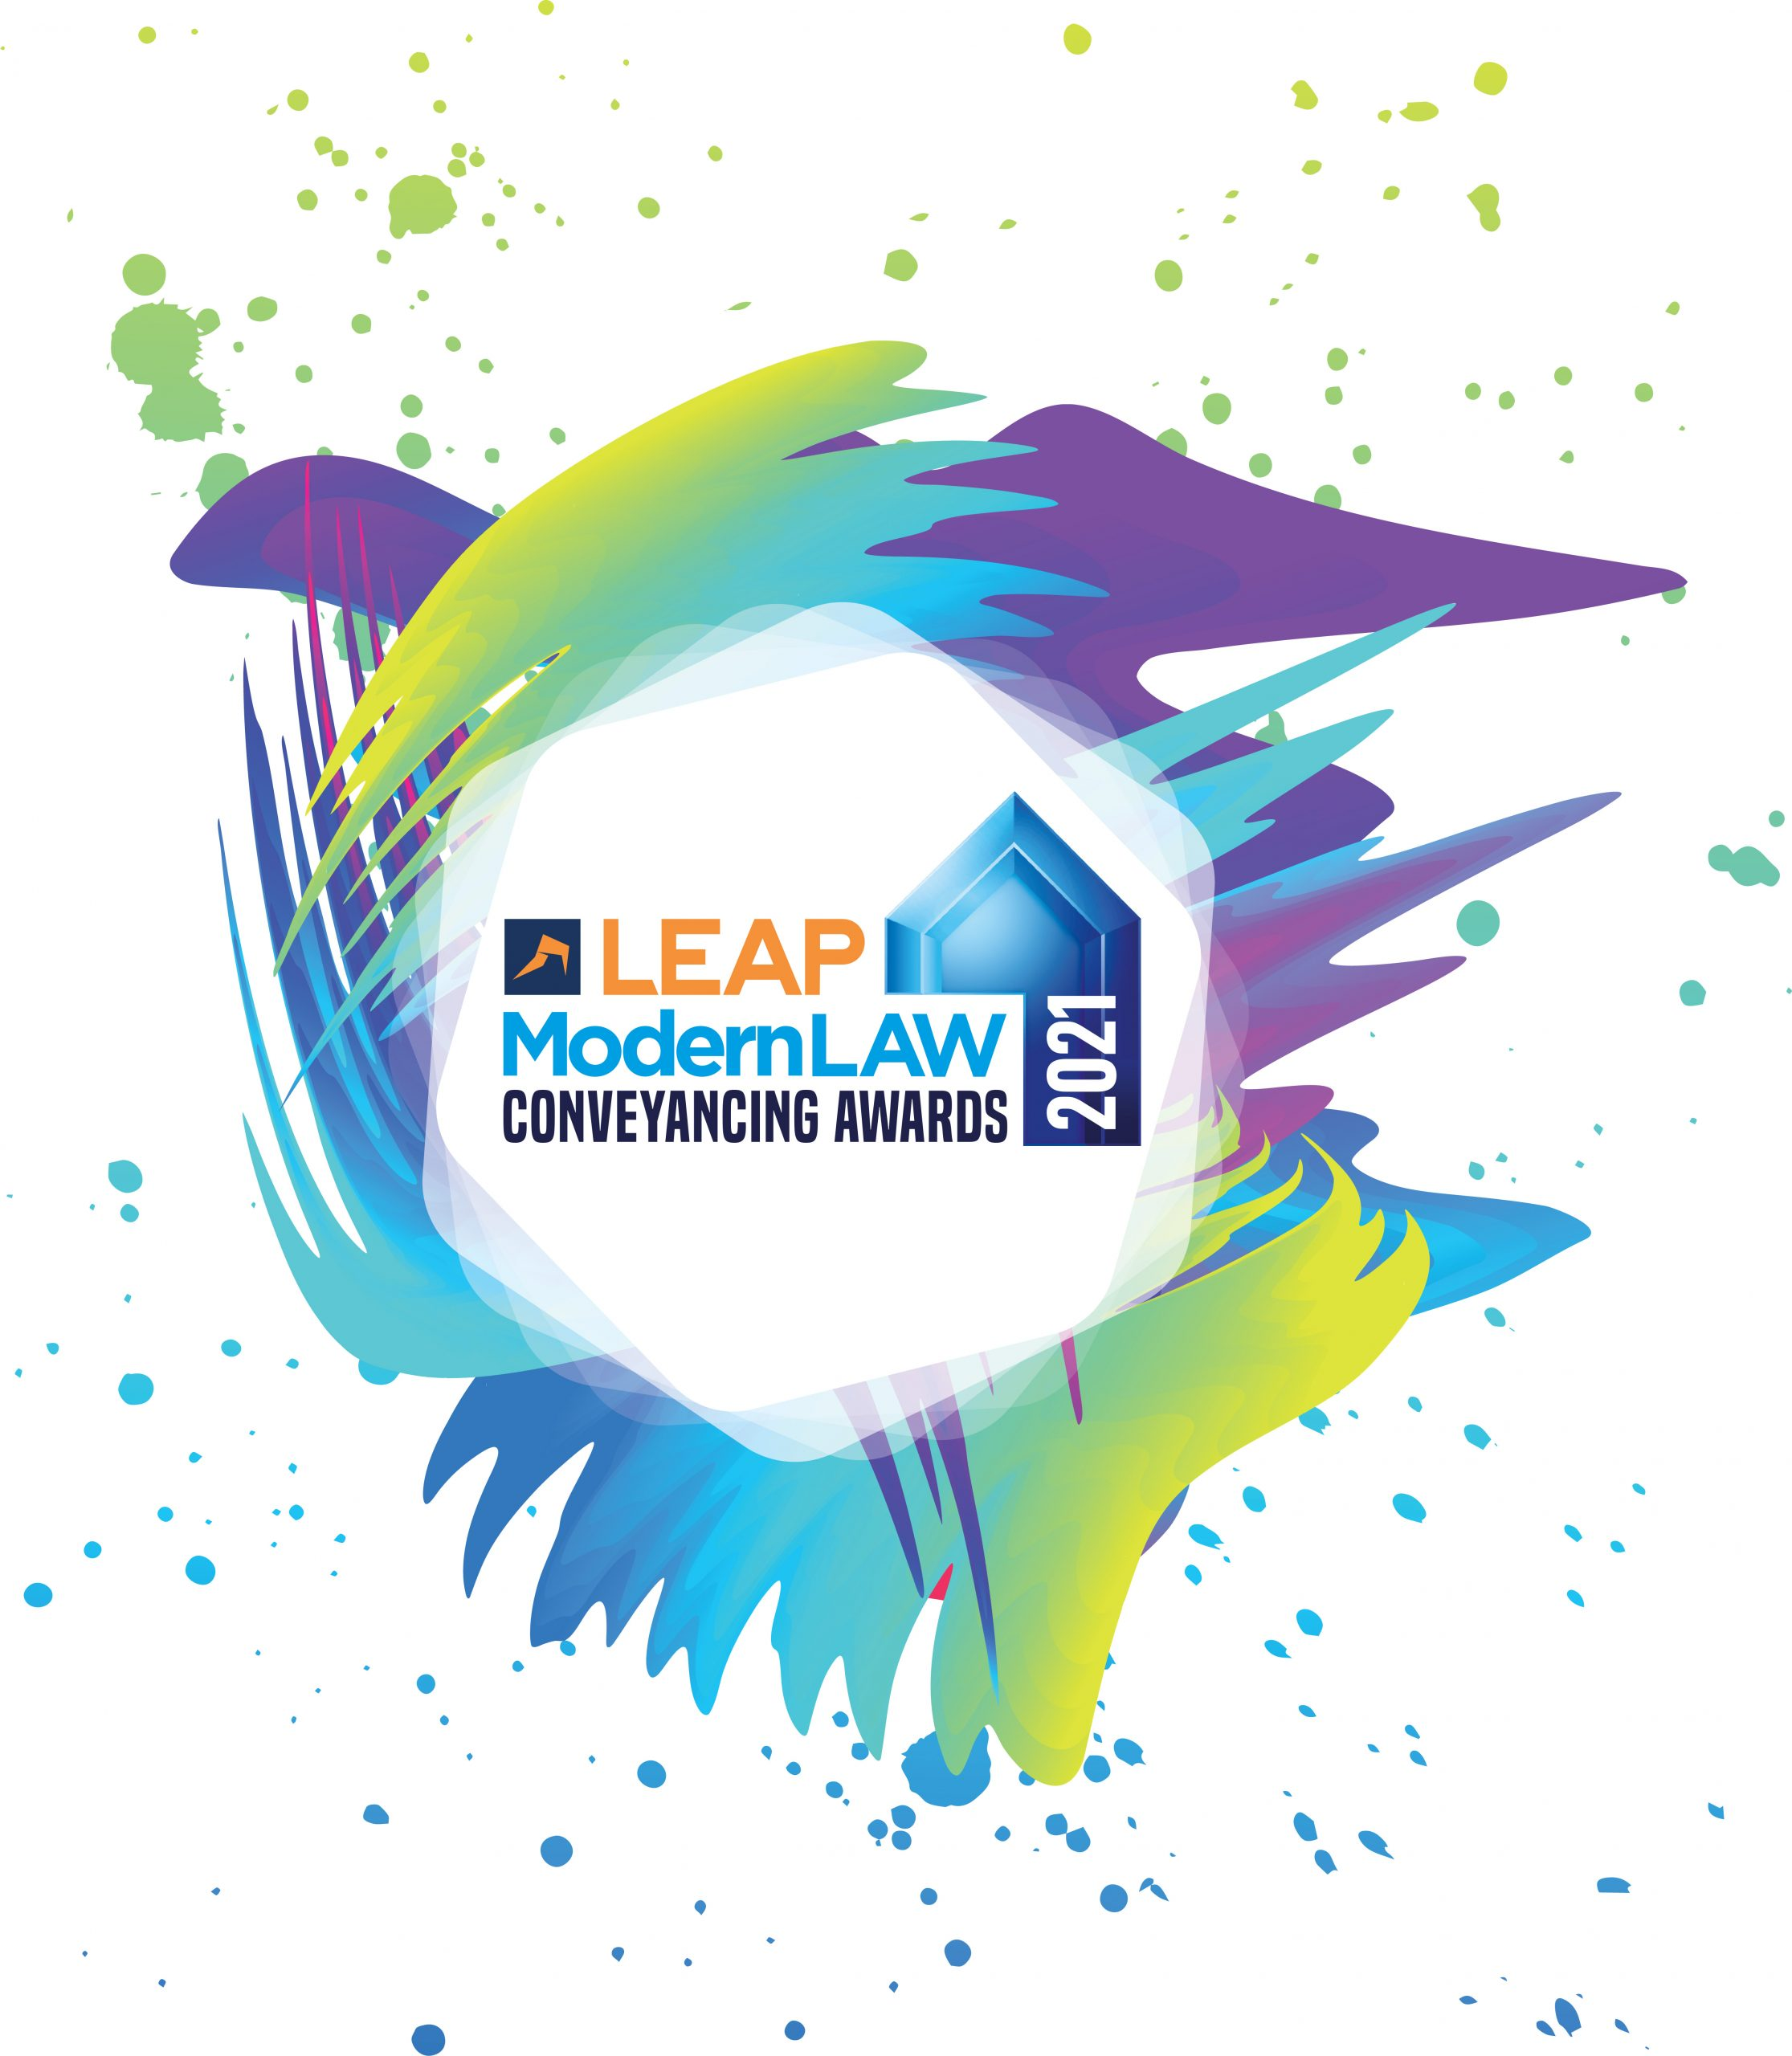 LEAP MODERN LAW CONVEYANCING AWARDS 2021